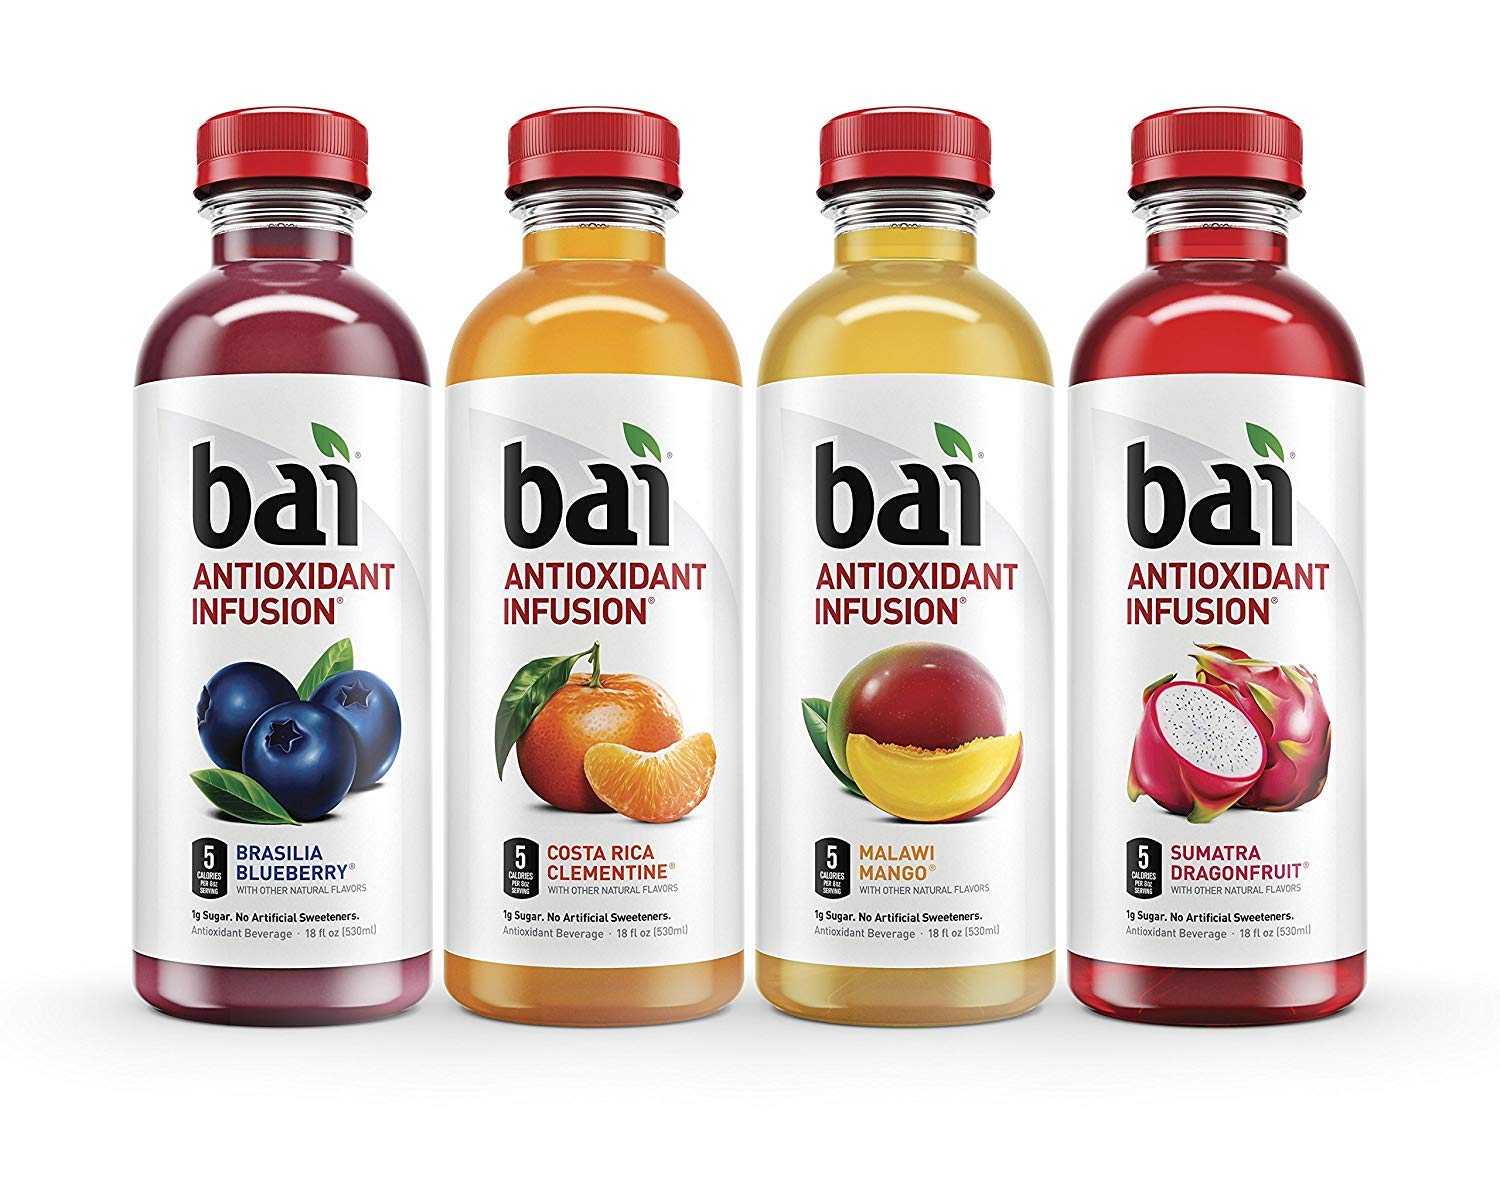 Bai Coconut Flavored Water, Cocofusions Variety Pack VI, 18 Fluid Ounce Bottles, 12 count, 3 each of Costa Rica Clementine, Sumatra Dragonfruit,Brasilia Blueberry, Malawi Mango